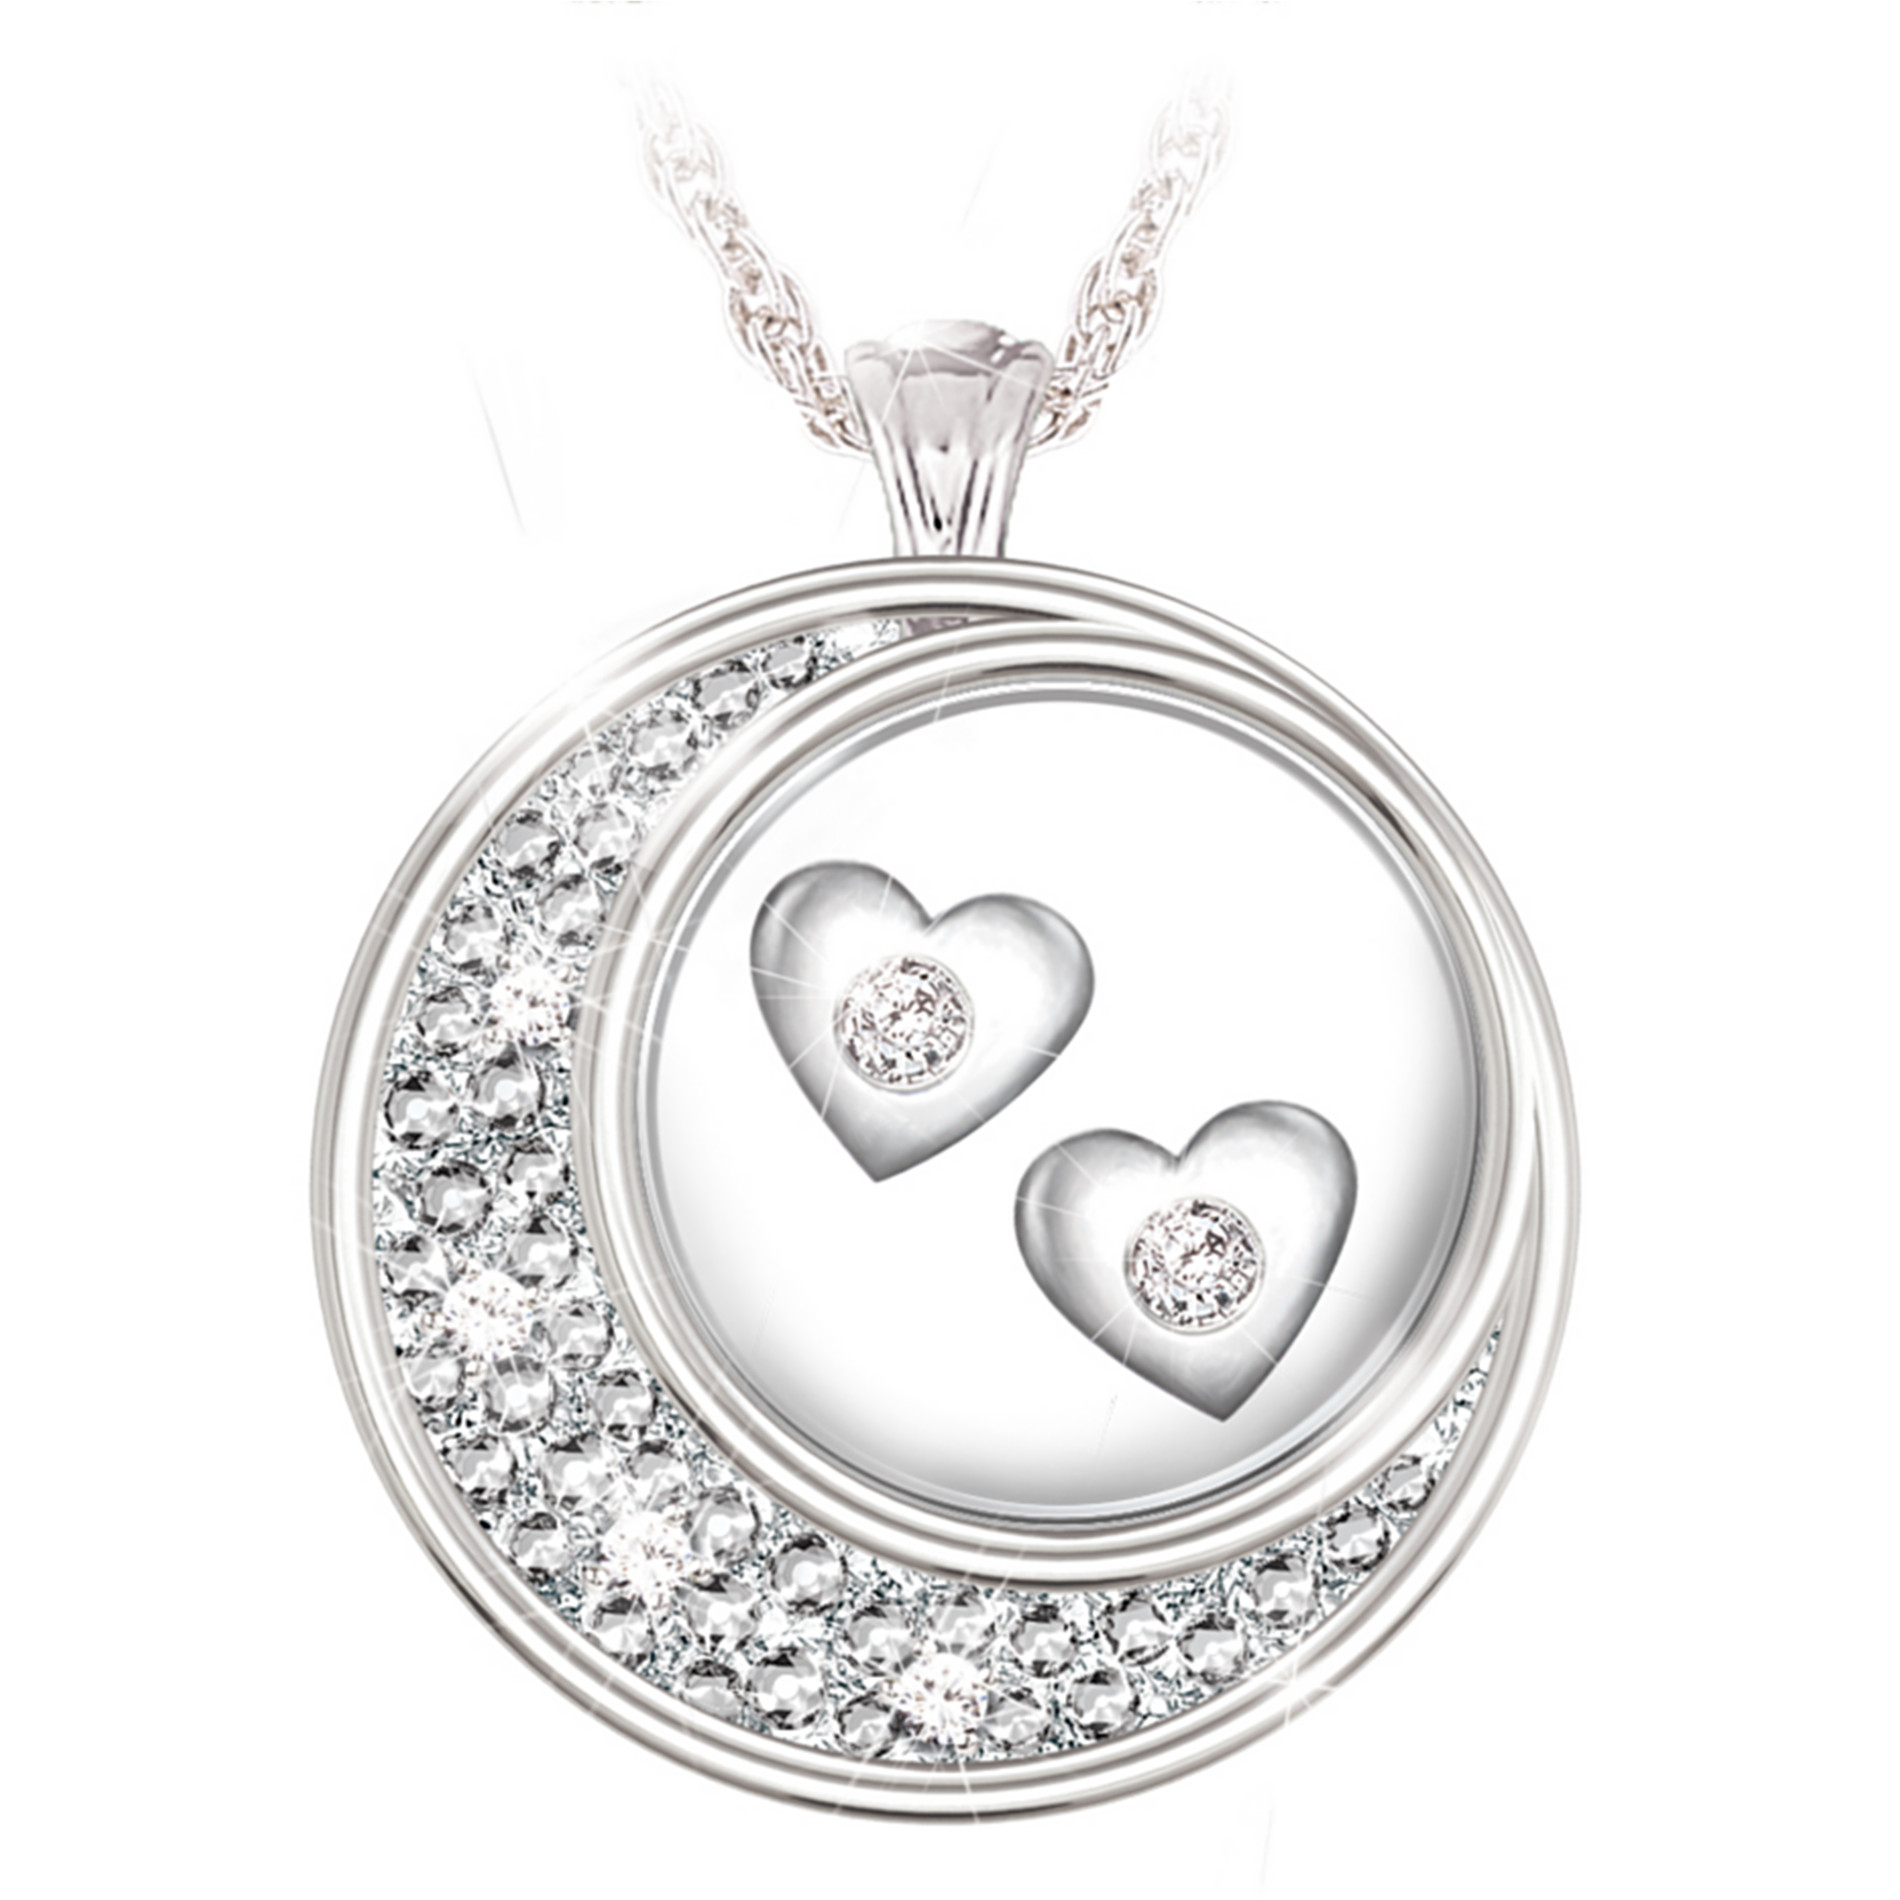 The Bradford Exchange Sterling Silver And Diamond Pendant Necklace: I Love You To The Moon And Back at Sears.com